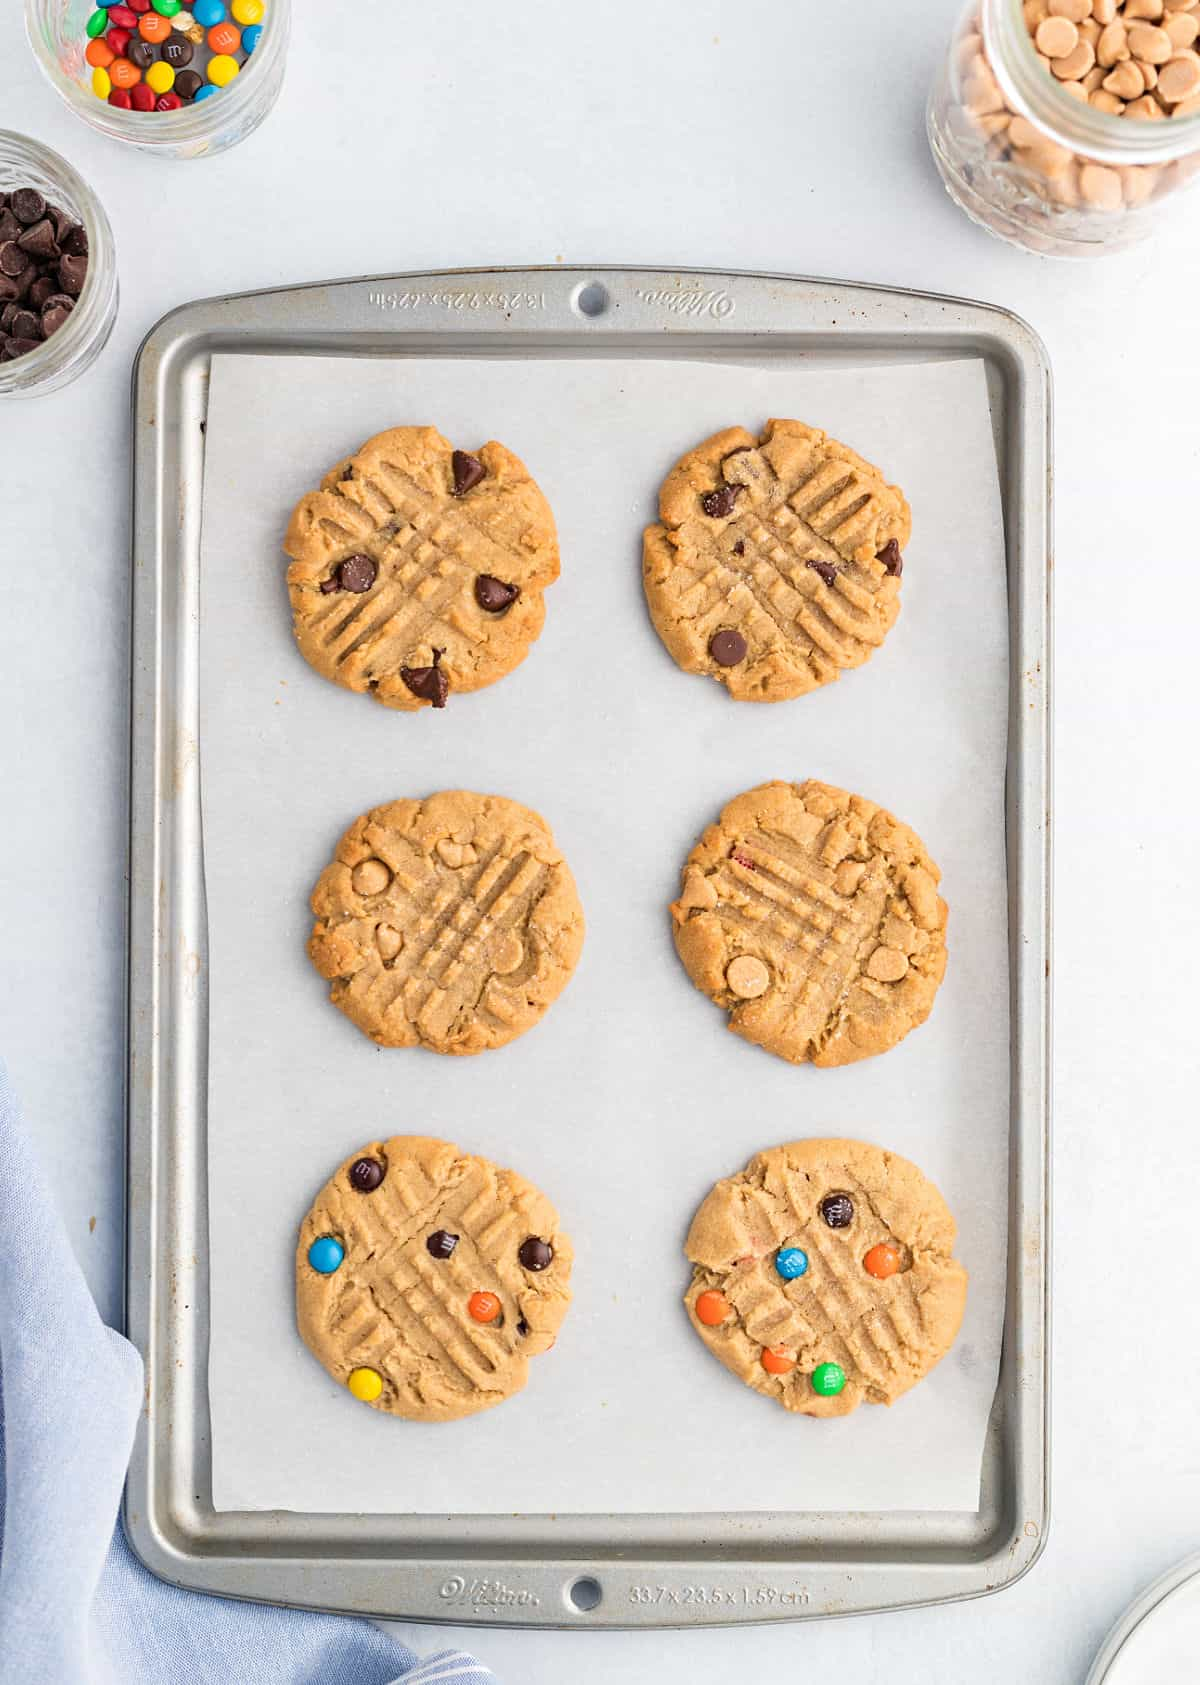 Peanut butter cookies on parchment paper lined cookie sheet.